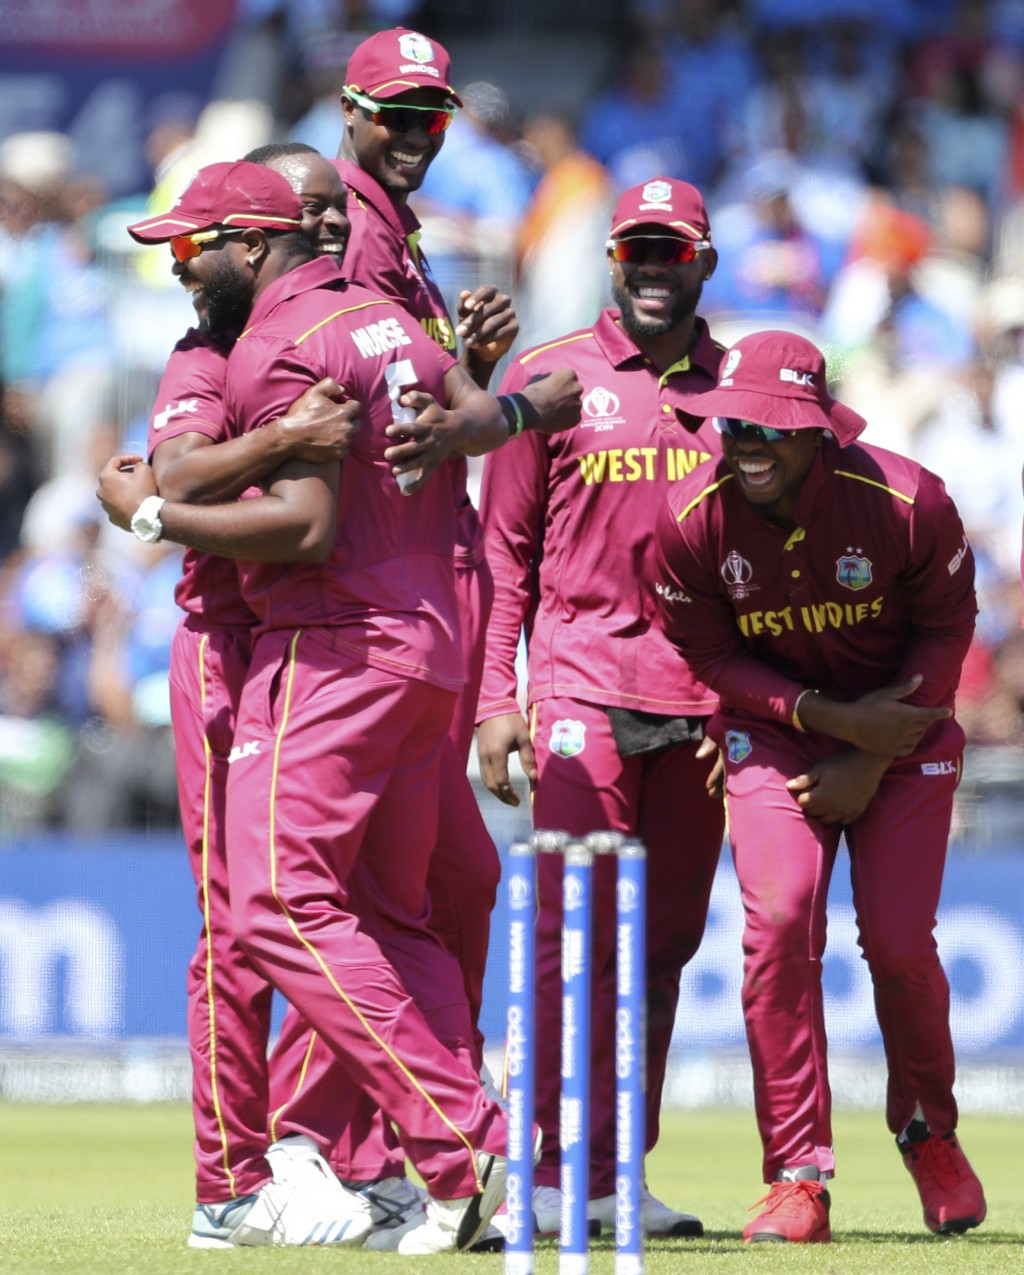 West Indies' Kemar Roach, left, and teammates celebrate the dismissal of India's Kedar Jadhav during the Cricket World Cup match between India and Wes...